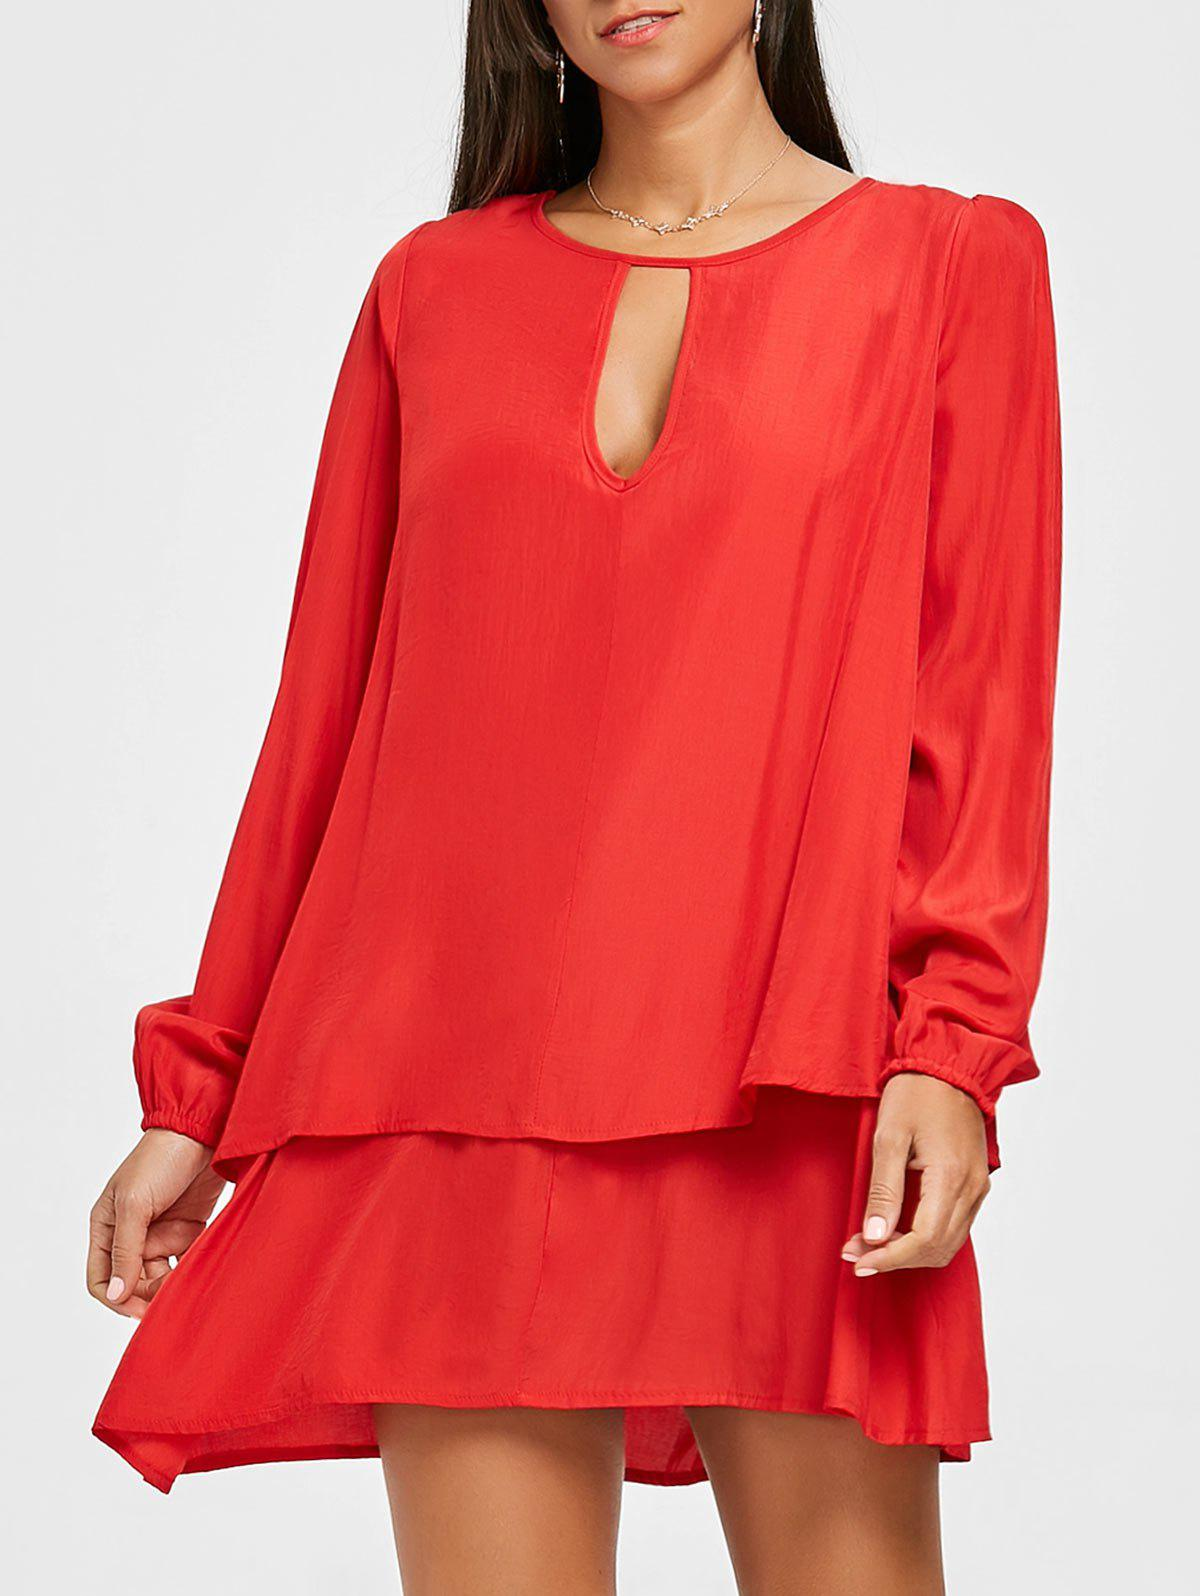 Long Sleeve Front Cut Out Layered Dress - RED 2XL